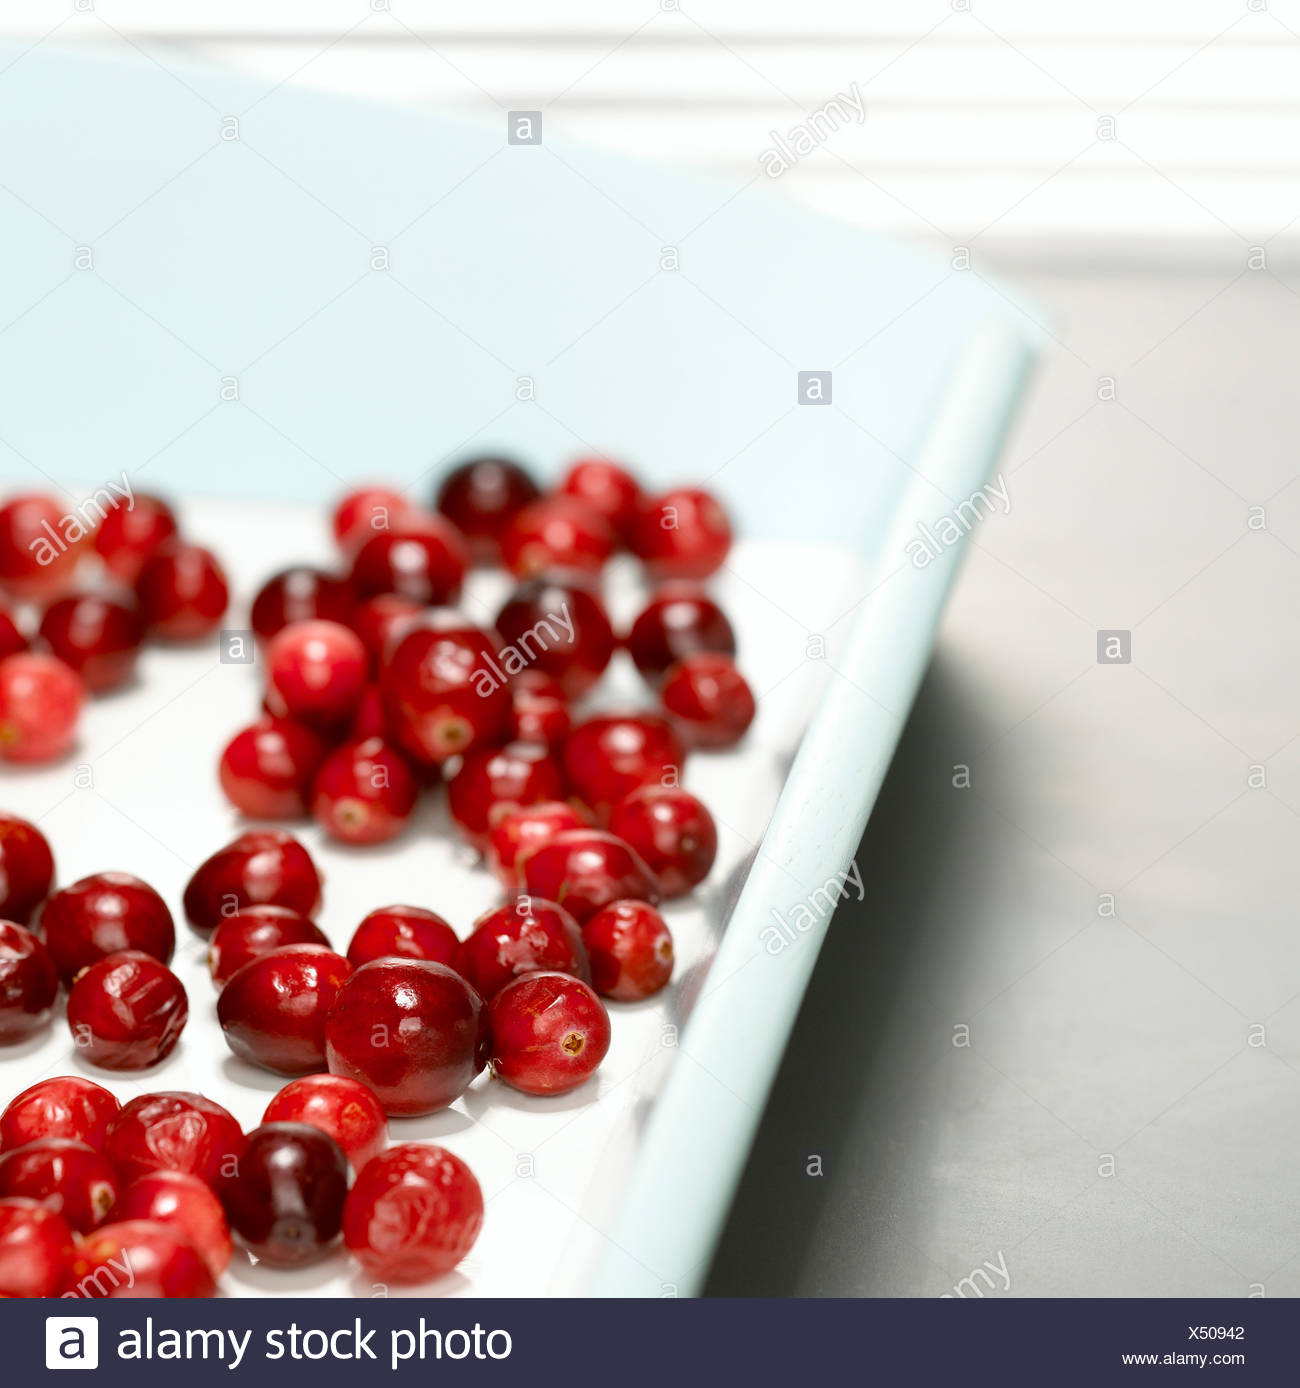 Cranberries on tray, close-up - Stock Image